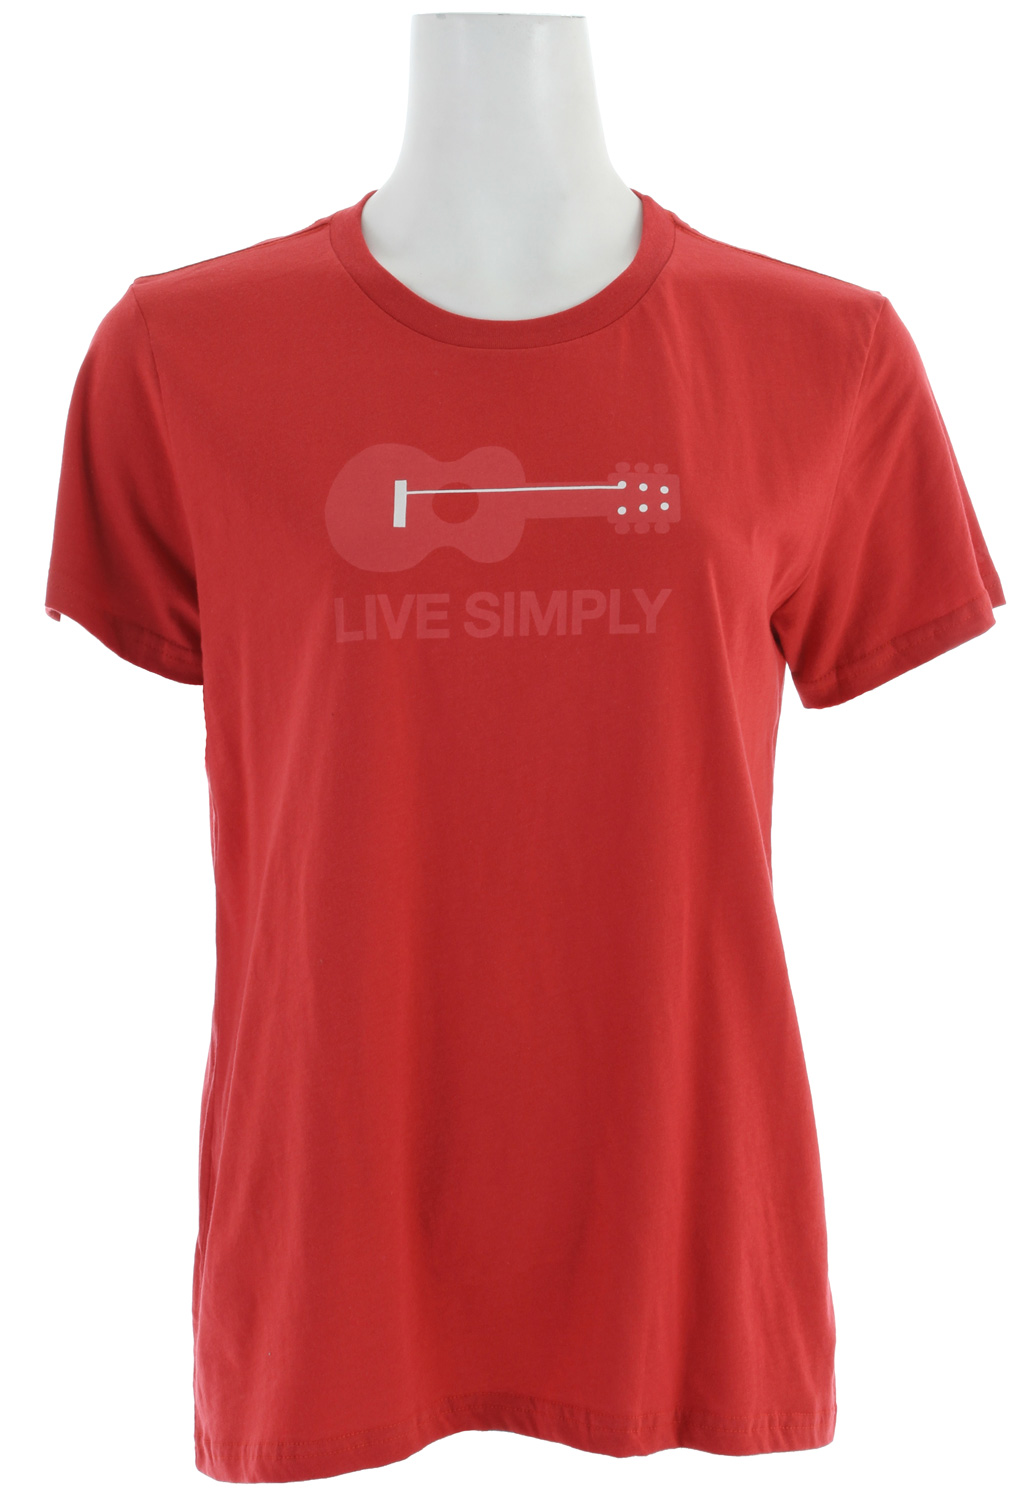 TWANG! Just live simply, that's all we're saying. Original art by Geoff McFetridge on a 100% organic cotton tee. fabric: 4-oz 100% organic cottonKey Features of the Patagonia Live Simply Guitar T-Shirt: Screen-print inks are PVC- and phthalate-free Taped shoulder seams for comfort Super soft, 40 singles 100% organic cotton jersey Classic Boy Fit - $24.95